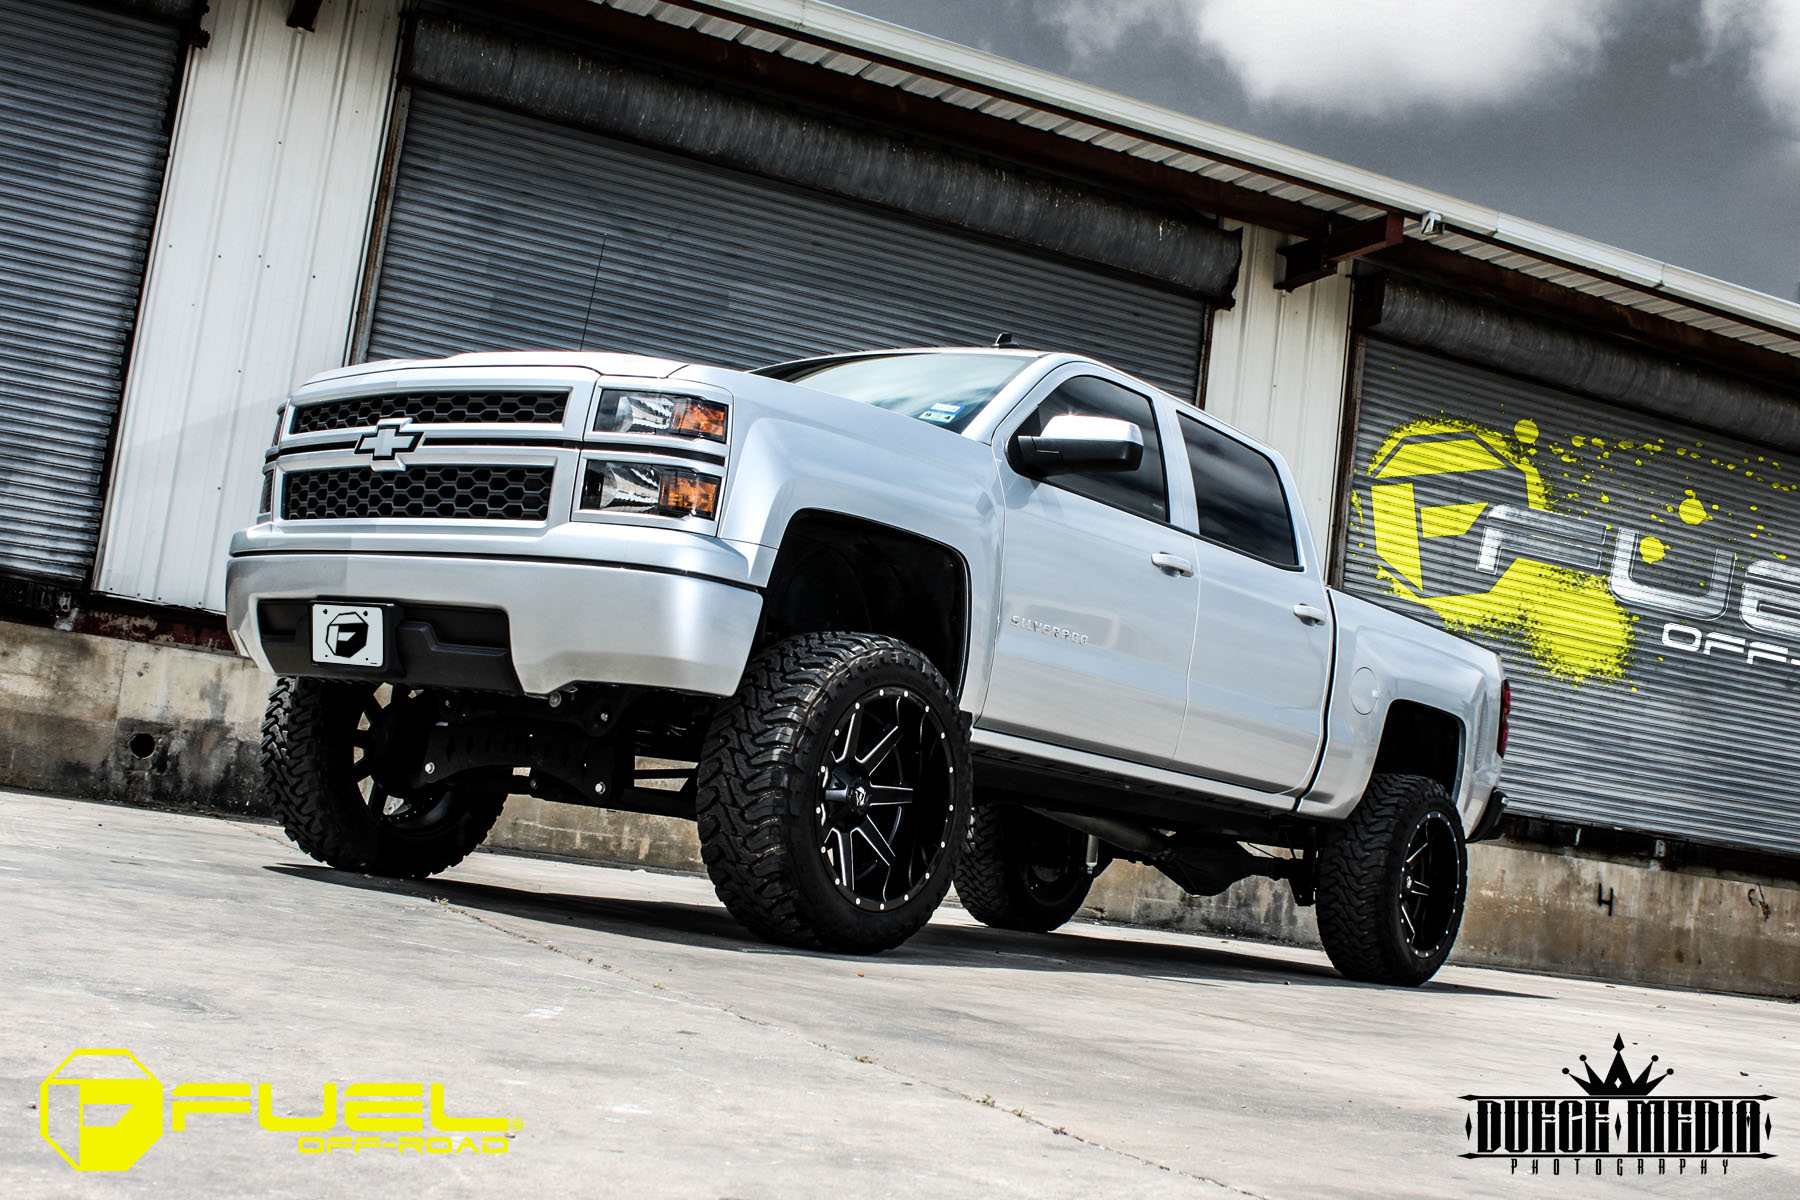 Chevrolet Silverado 1500 HD Maverick - D262 Gallery - Fuel Off-Road Wheels